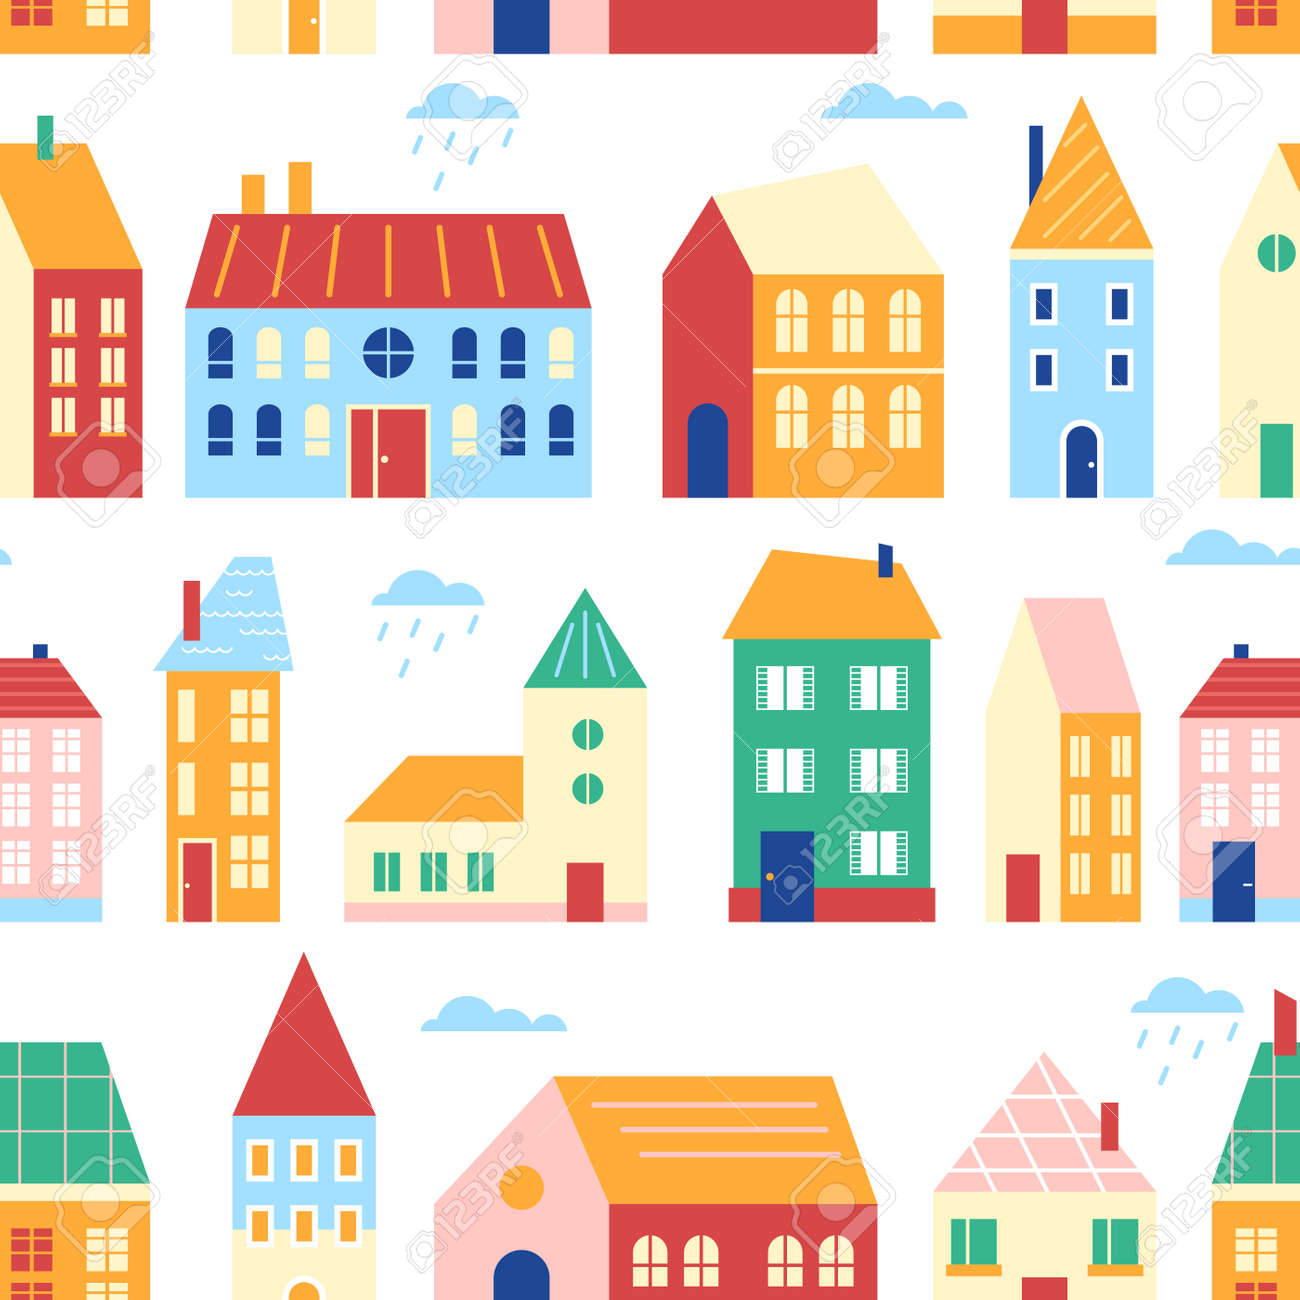 Houses seamless pattern vector illustration, cartoon flat cute urban cityscape with colorful buildings, retro traditional townhouses in row - 158483394